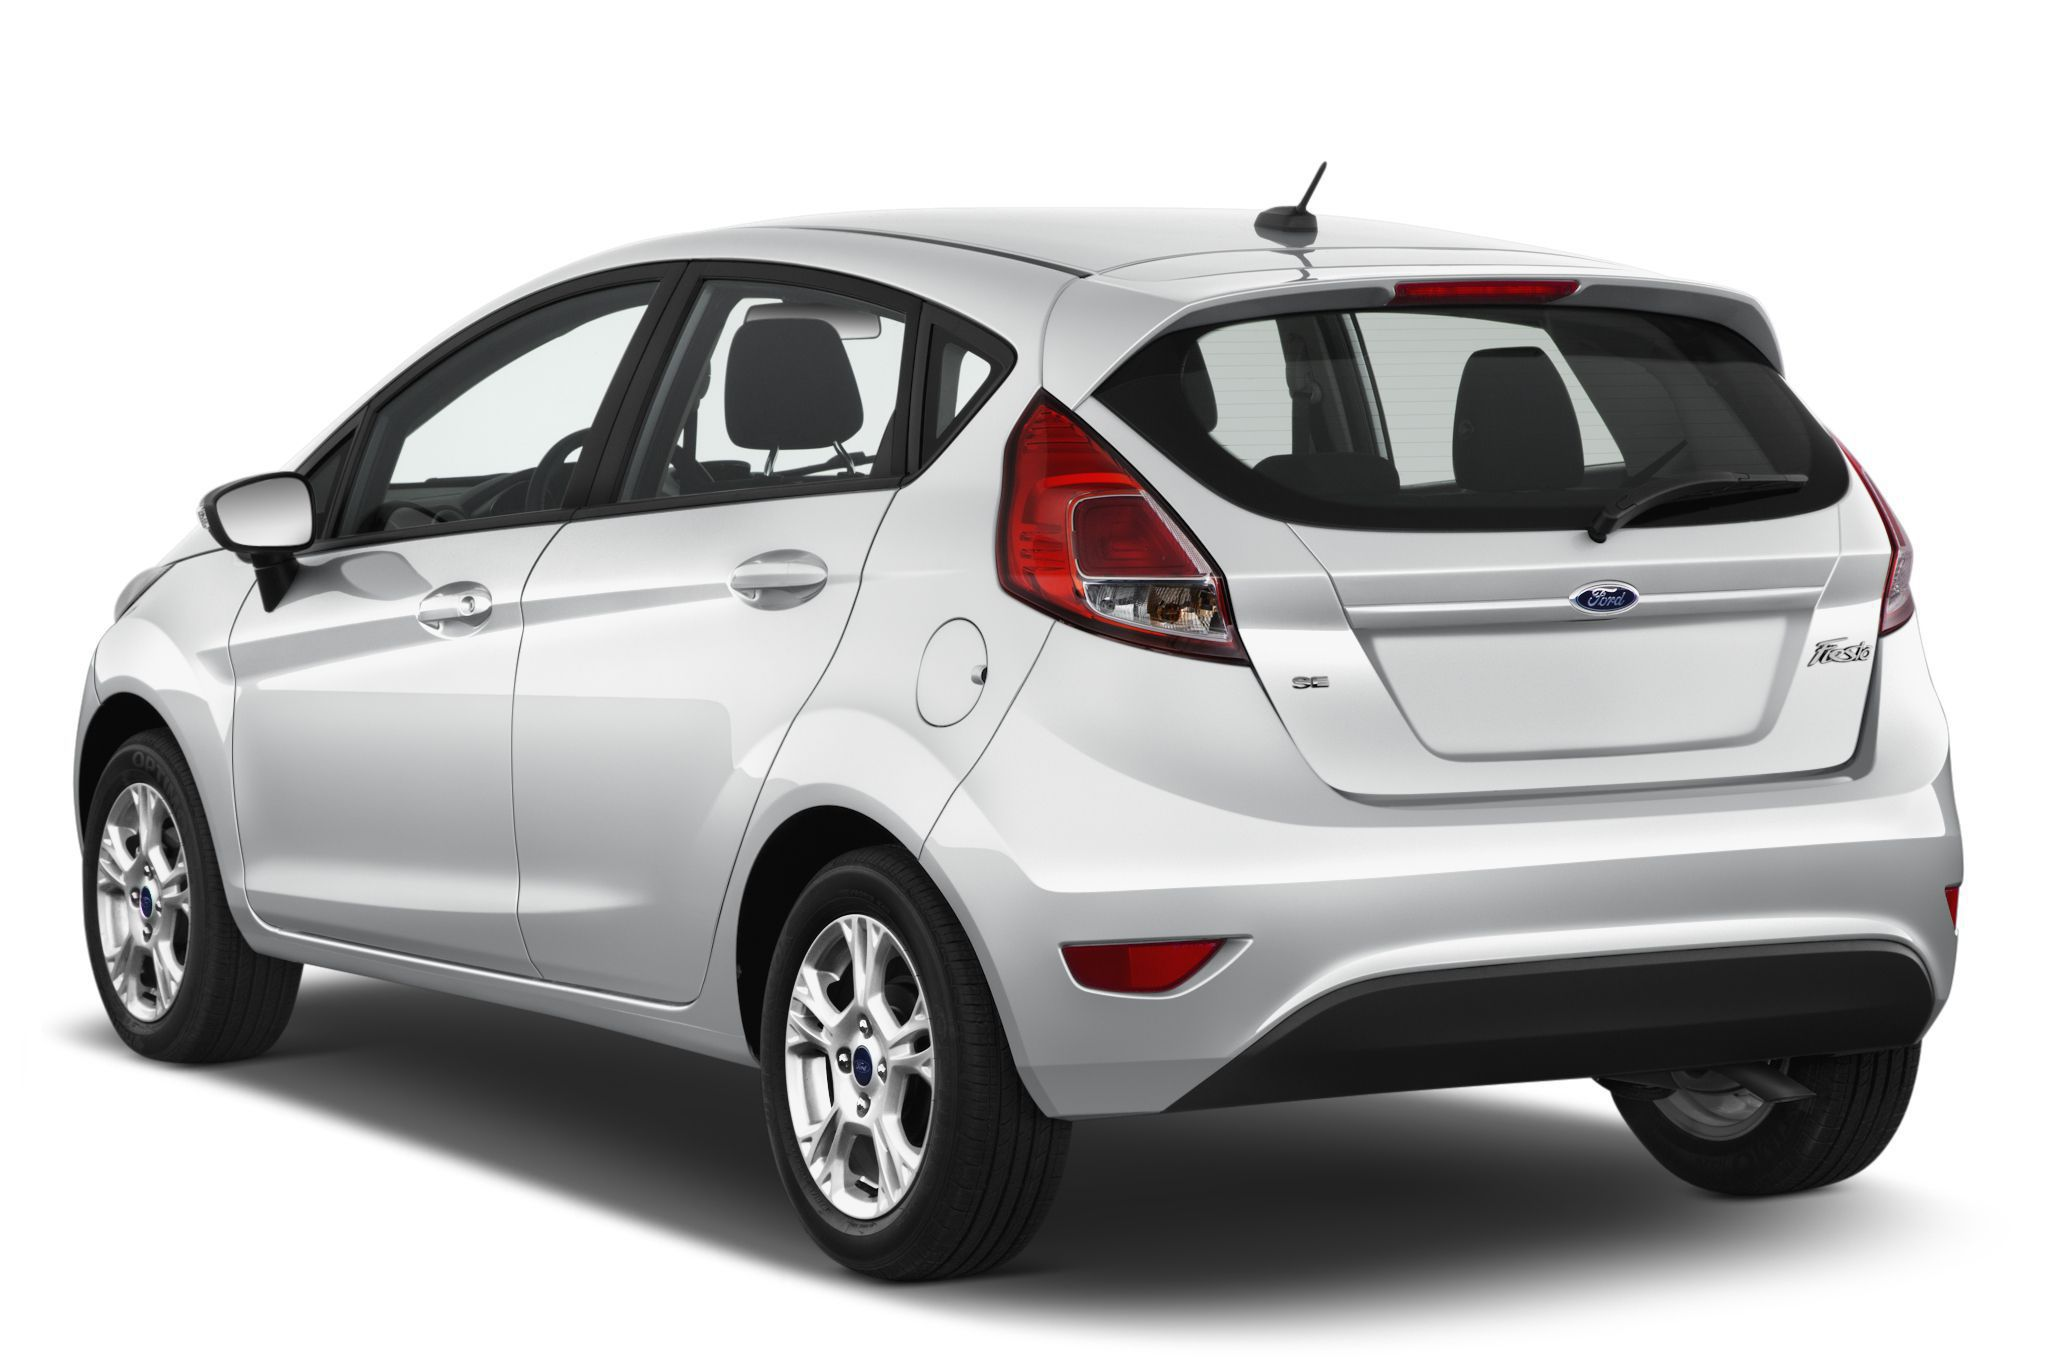 Ford Fiesta Images